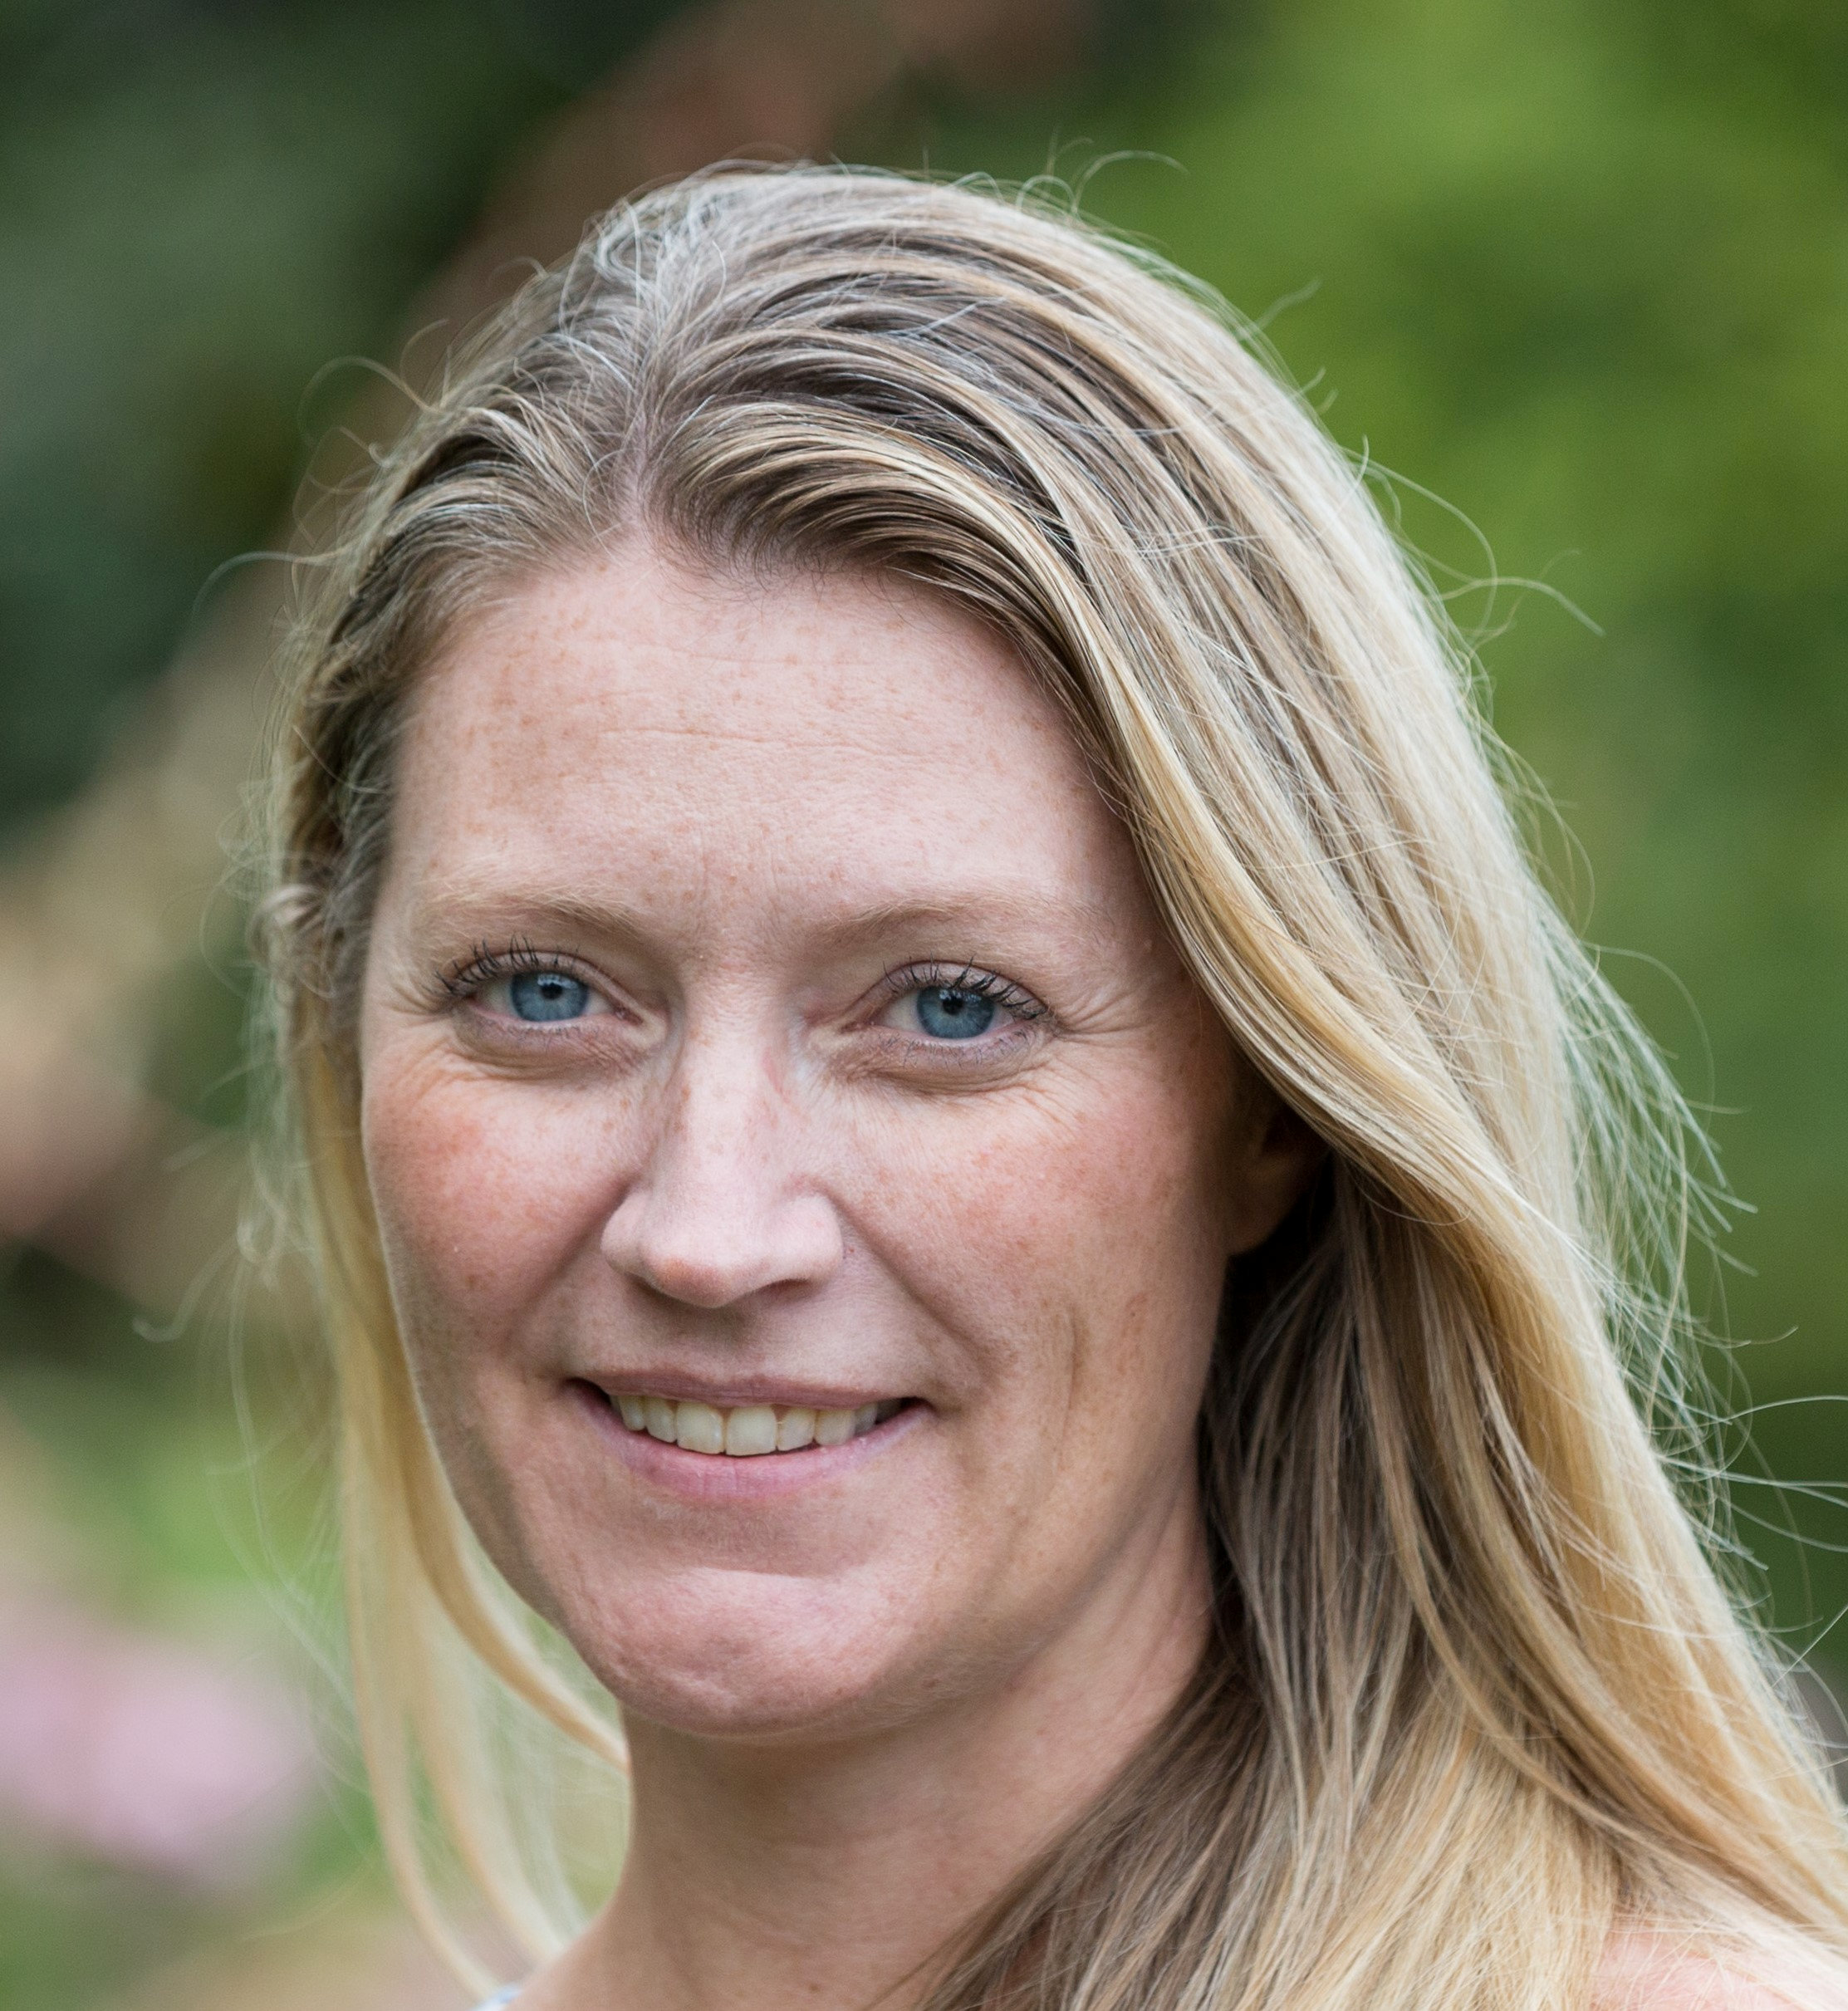 Dr Gráinne McCabe, Head of Conservation and Field Science at Bristol Zoological Society